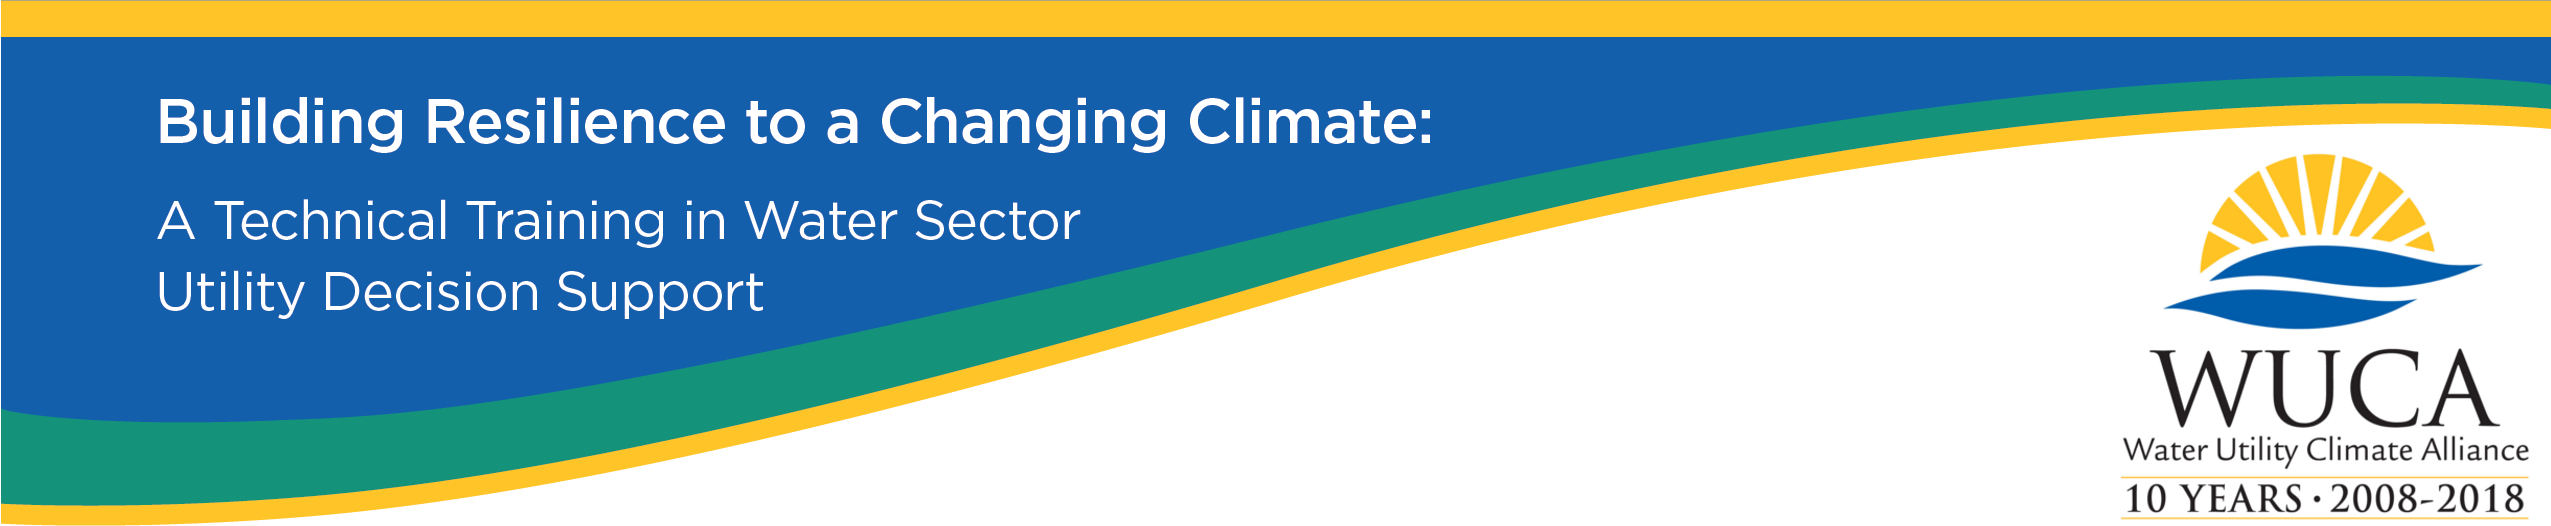 Building Resilience to a Changing Climate: A Technical Training in Water Sector Utility Decision Support